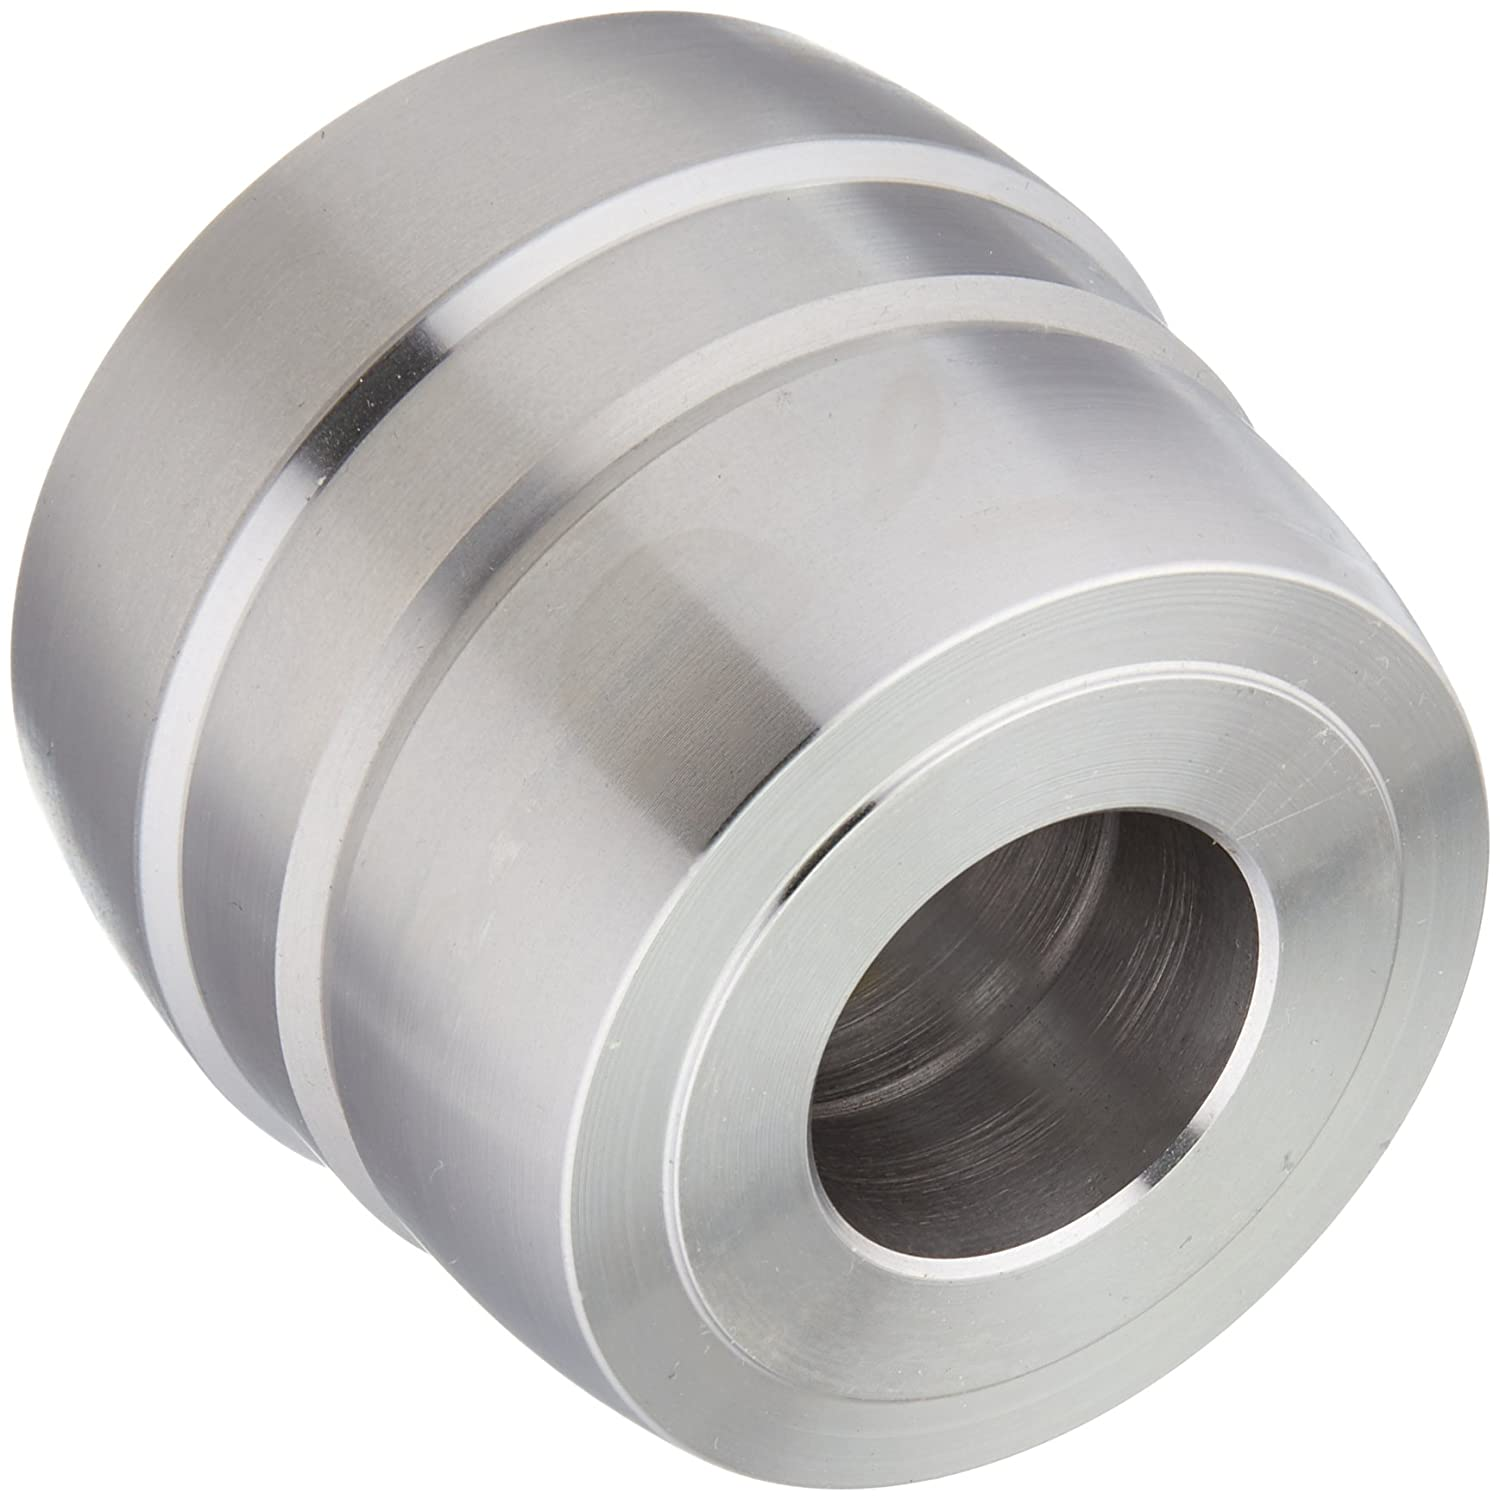 Shark A9193 2.074 Inch By 2.44 Inch Double Taper Adaptor